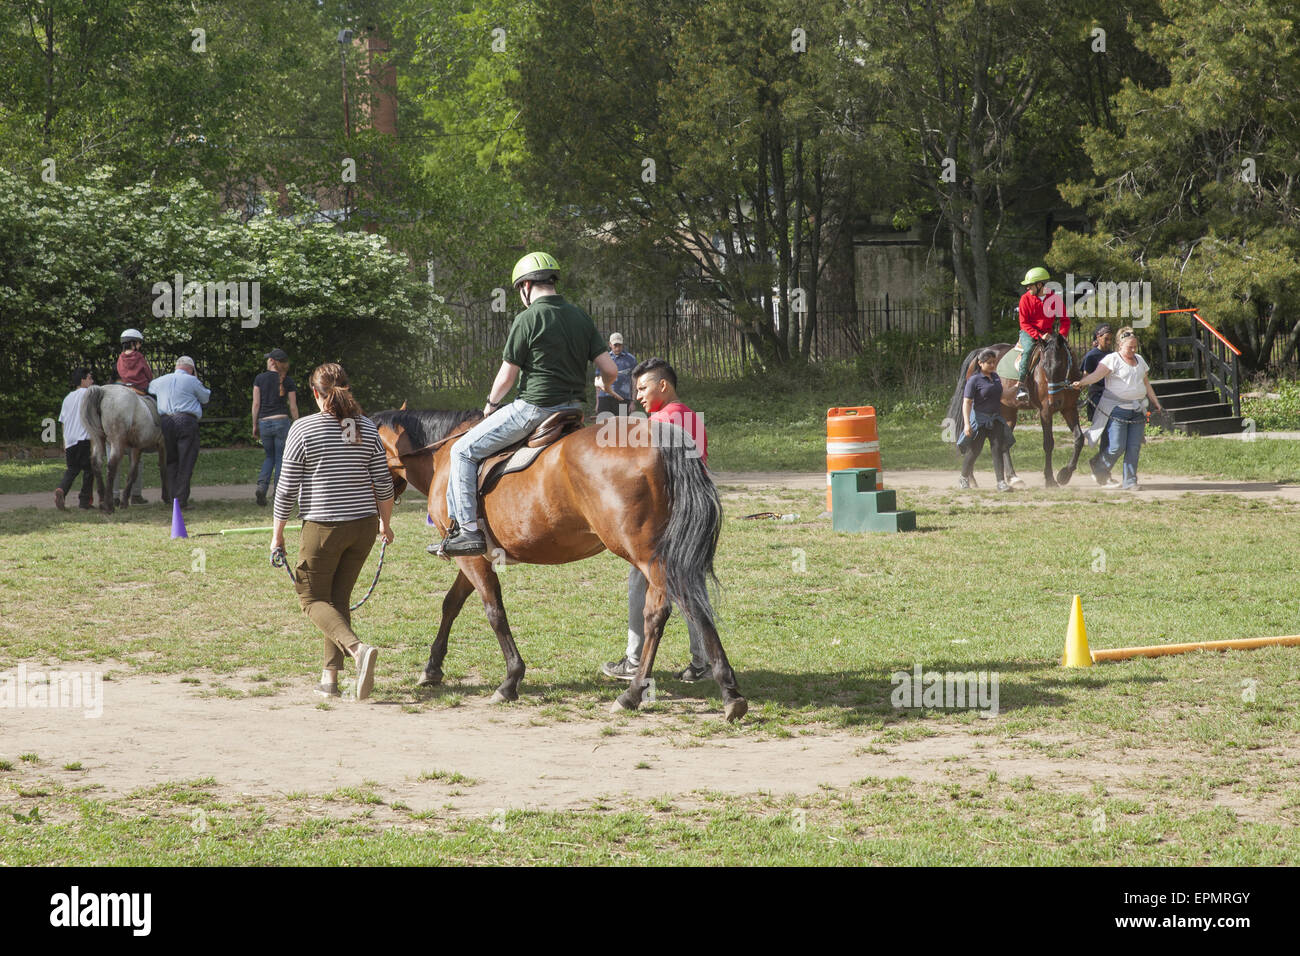 Disabled children receive developmental therapy learning to ride horses, known as Hippotherapy. Prospect Park, Brooklyn, - Stock Image